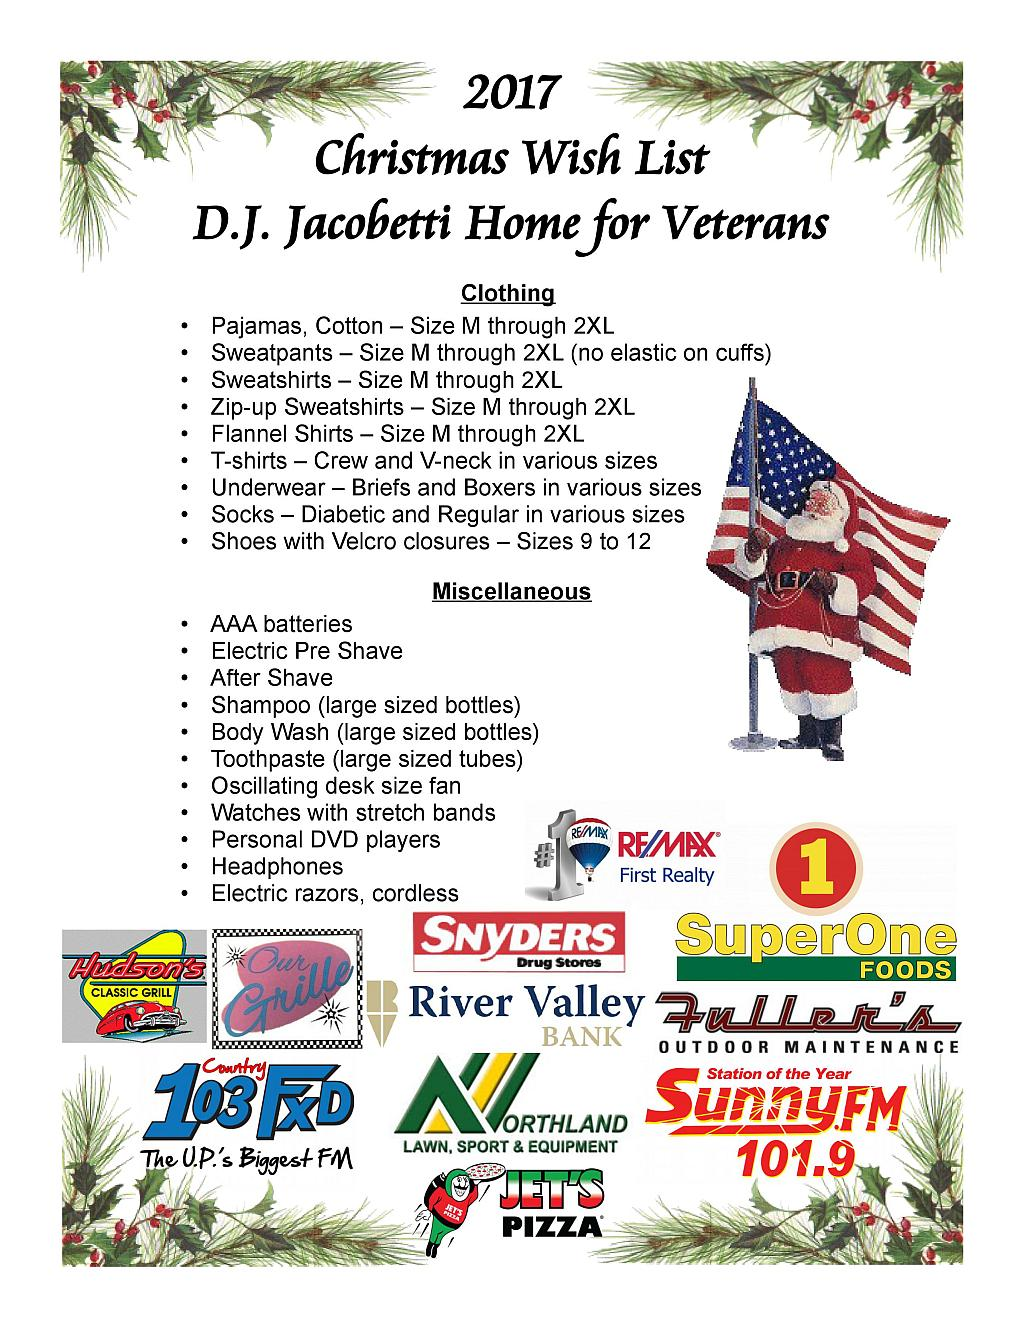 Click to see the 2017 Christmas Wist List for D.J. Jacobetti Home for Veterans.